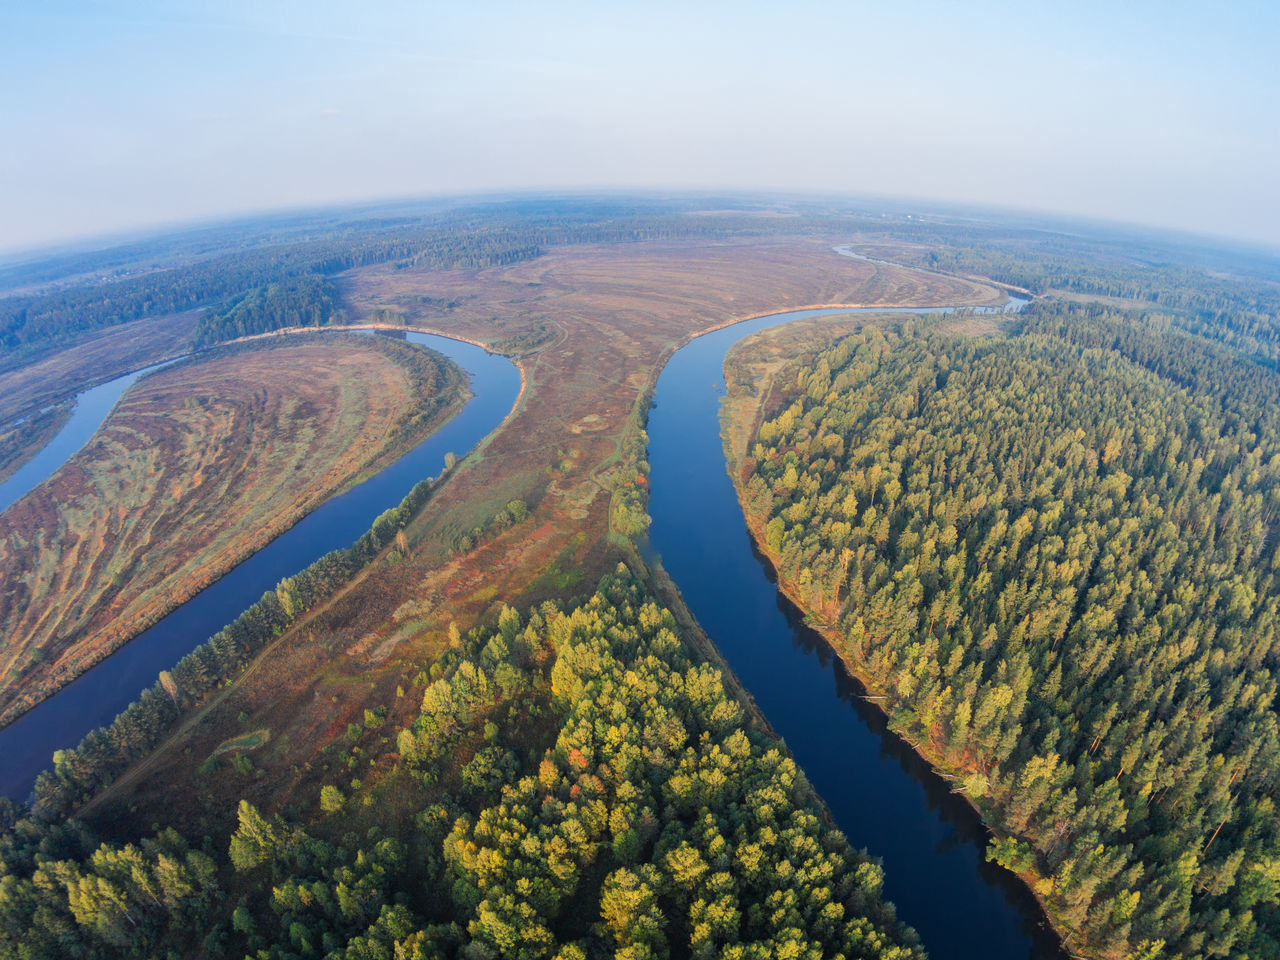 The bends of the river Mologa, morning view from the air. A Bird's Eye View Beauty In Nature Dji Dji Phantom Drone  Growth Landscape Mologa Morning Nature No People Outdoors River Sky Top Perspective Tree Water WoodLand